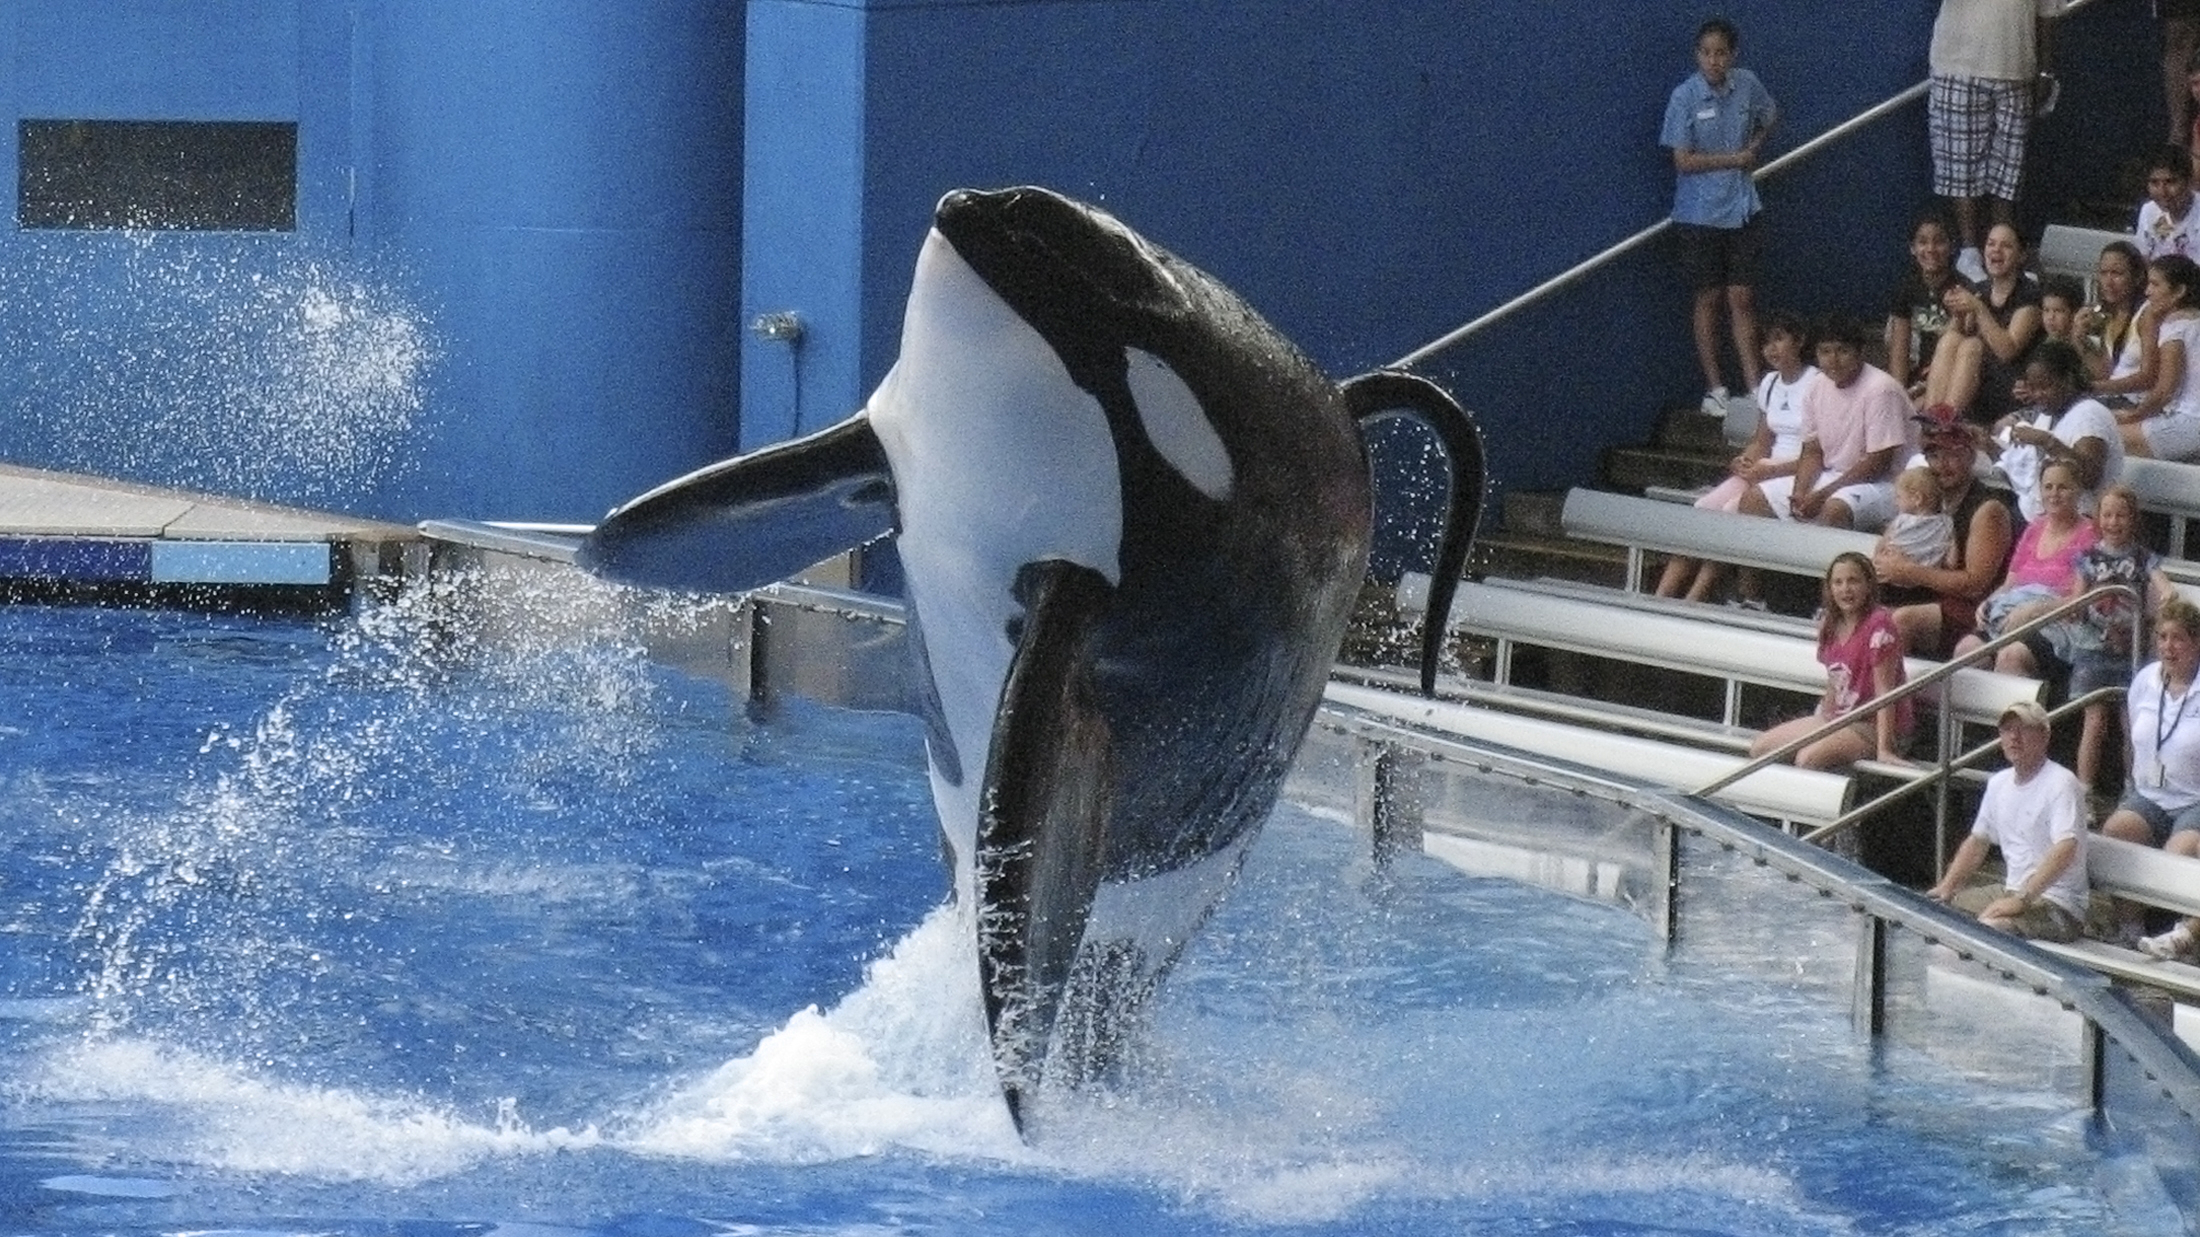 """Tillikum, a killer whale at SeaWorld amusement park, performs during the show """"Believe"""" in Orlando, in this September 3, 2009 file photo. Tillikum, who last year drowned a trainer at SeaWorld, performed publicly on March 30, 2011 for the first time since the death. REUTERS/Mathieu Belanger"""